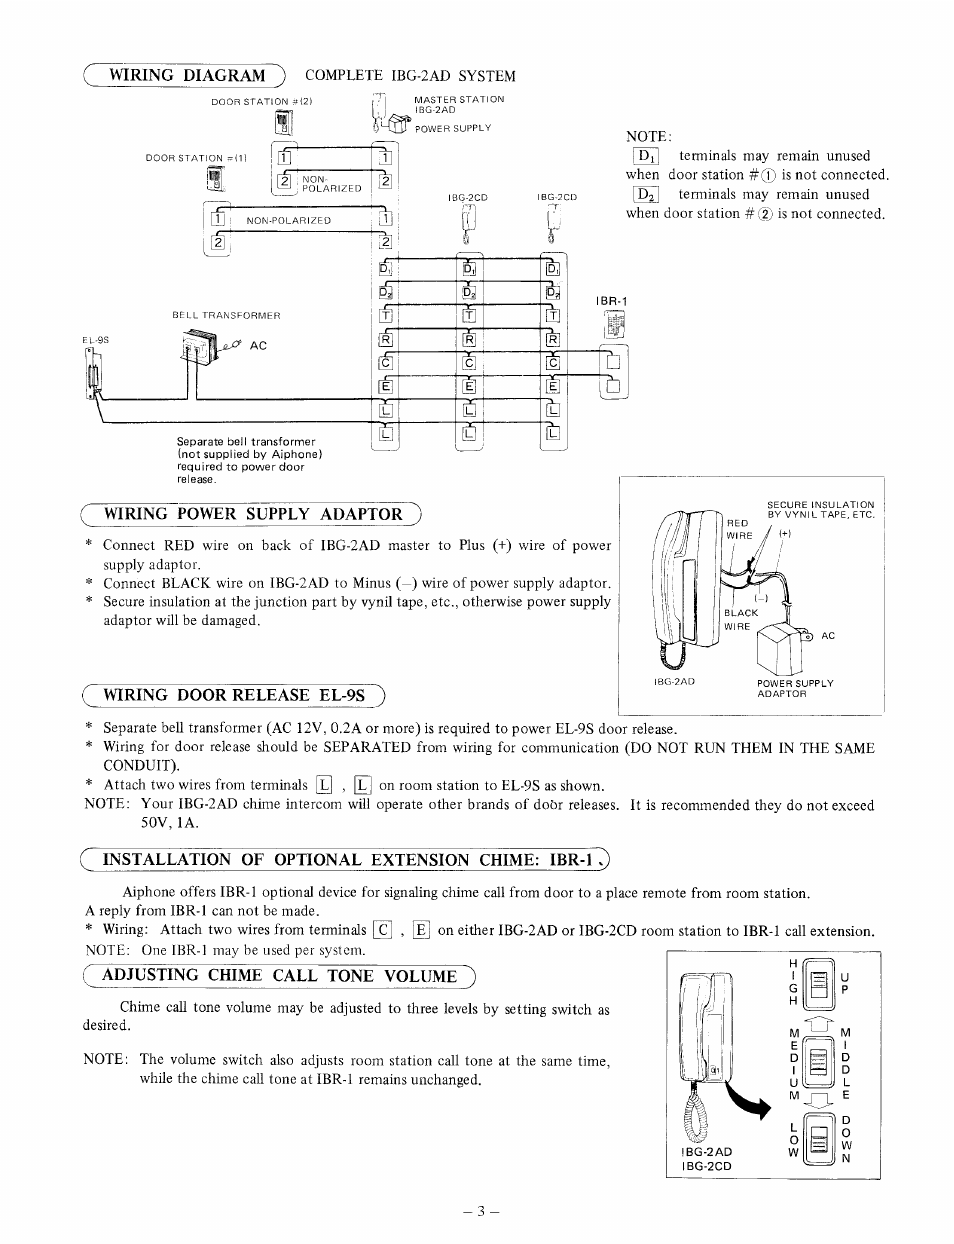 Bg Bell Transformer Wiring Diagram Door Chime With Power Supply Adaptor Release El 9s